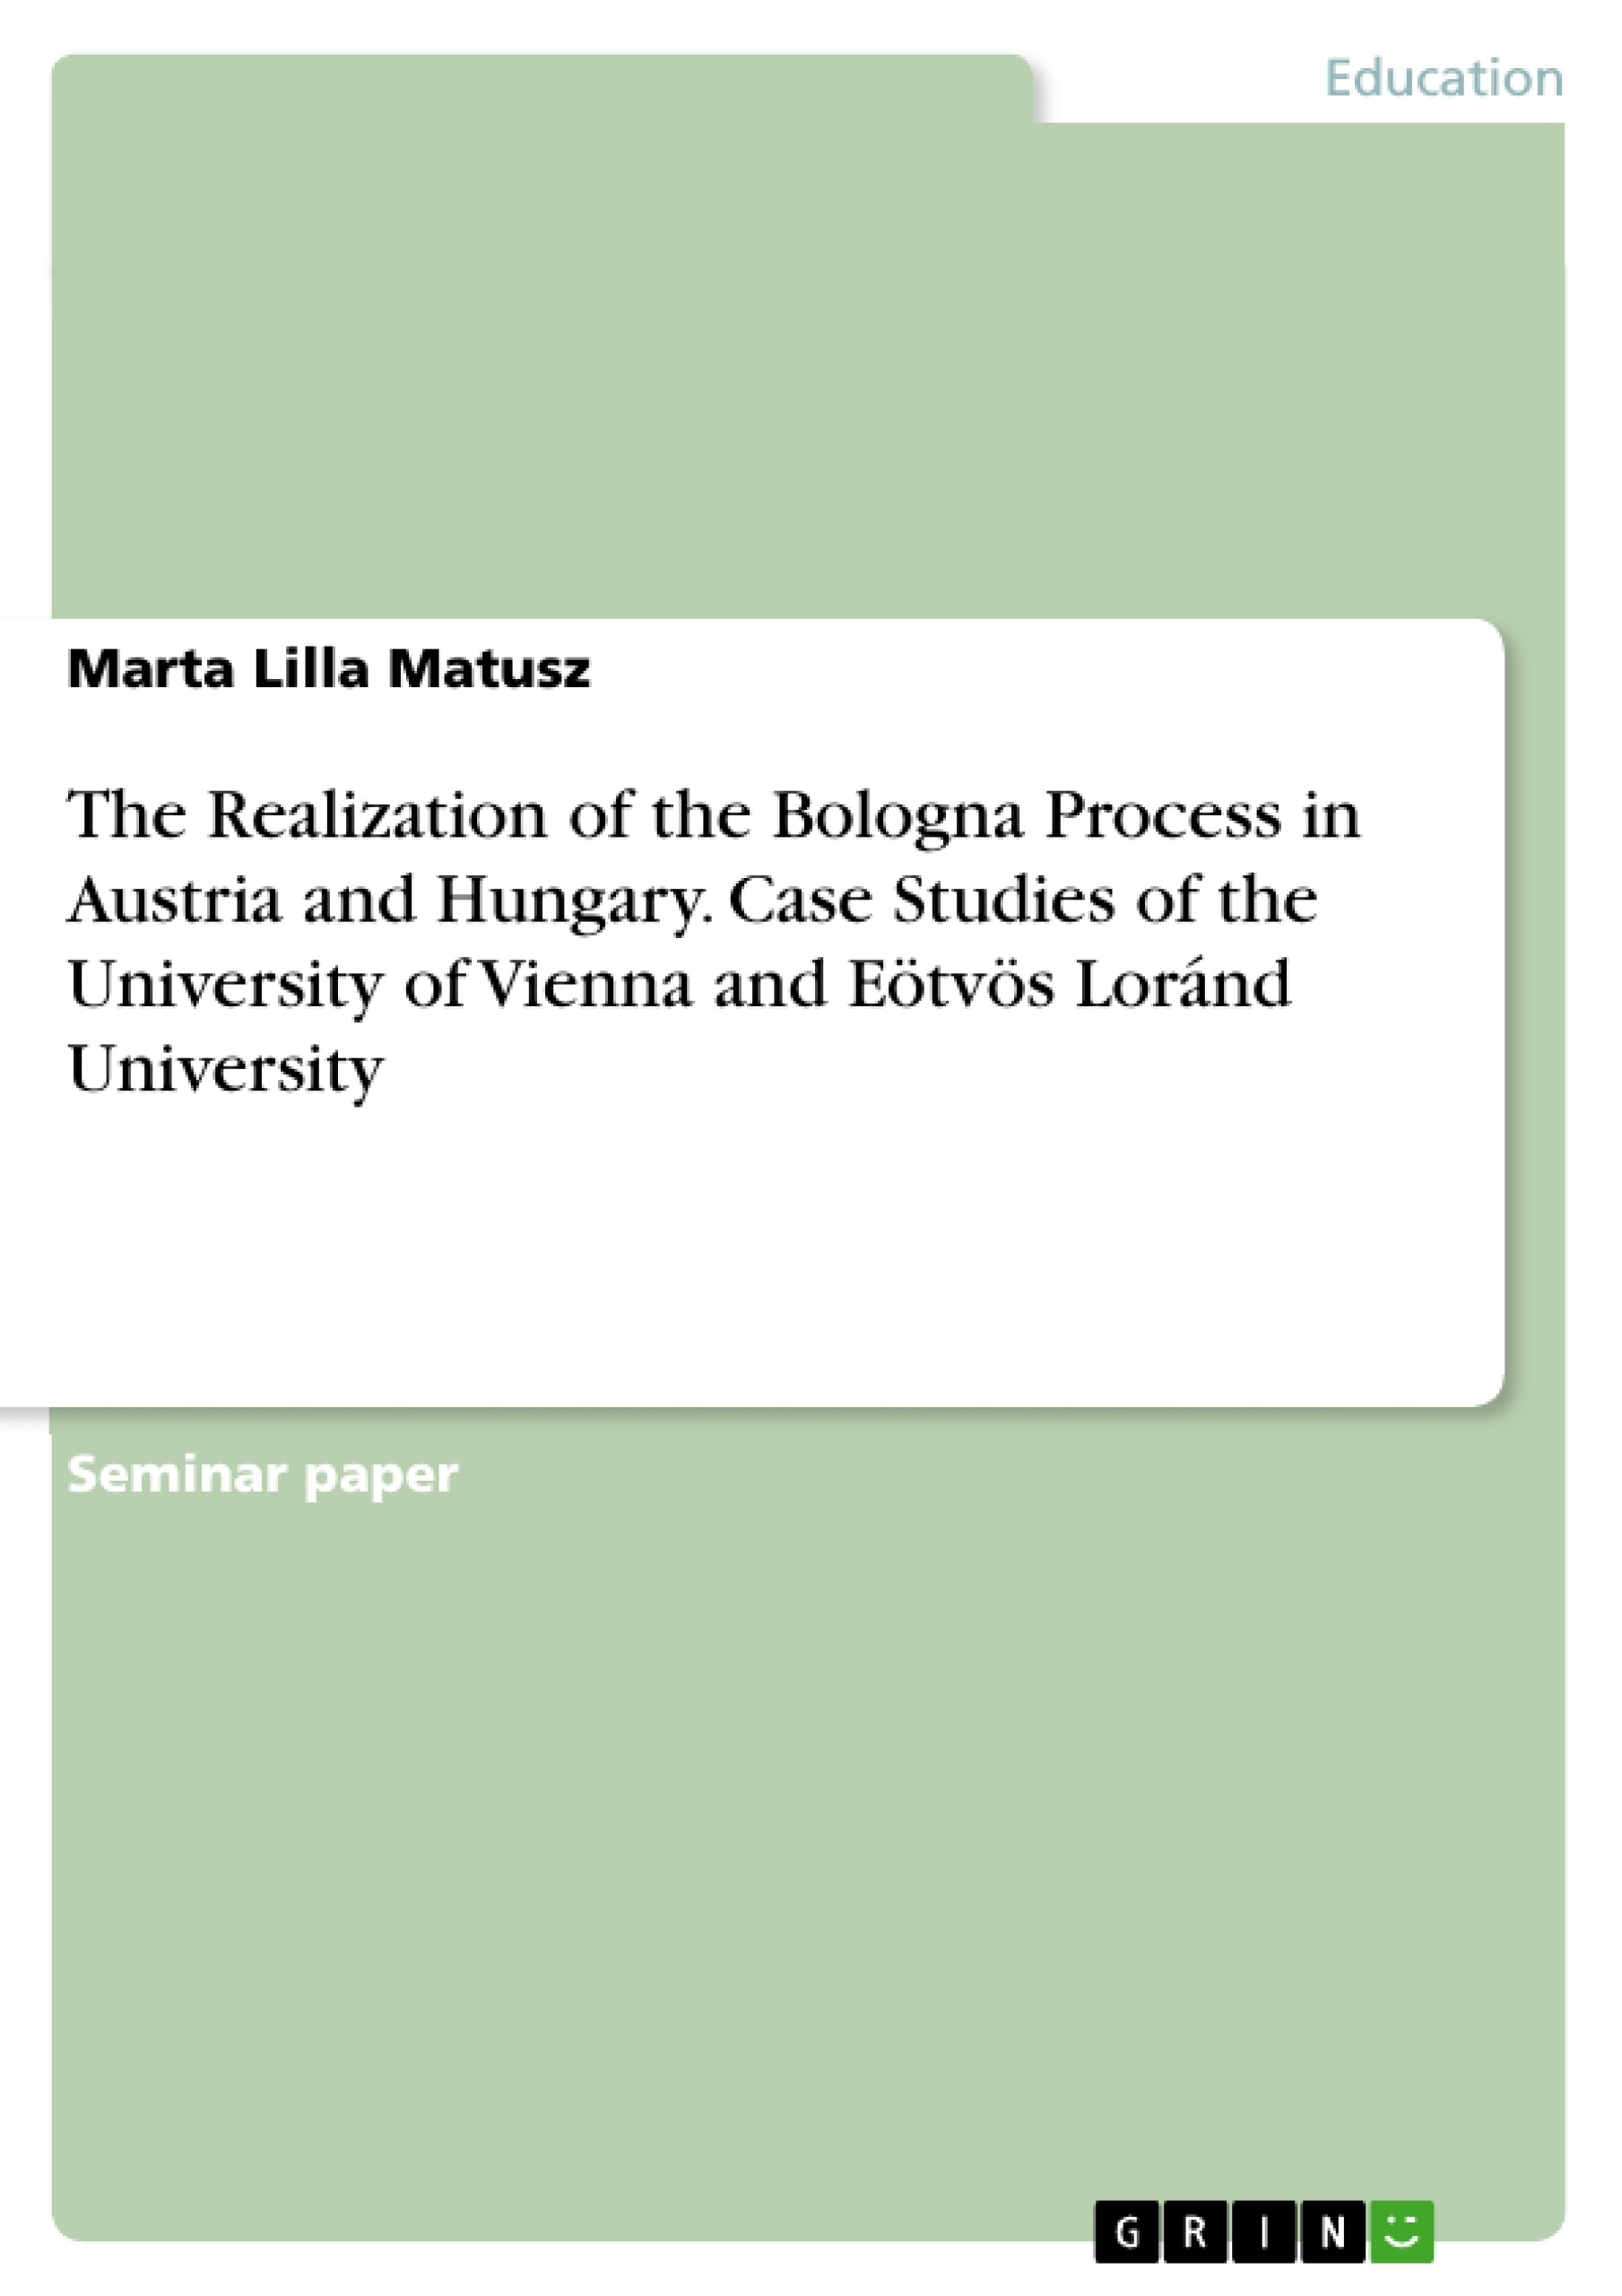 The Realization of the Bologna Process in Austria and Hungary. Case Studies  of the University of Vienna and Eötvös Loránd University 77c1c50ac801